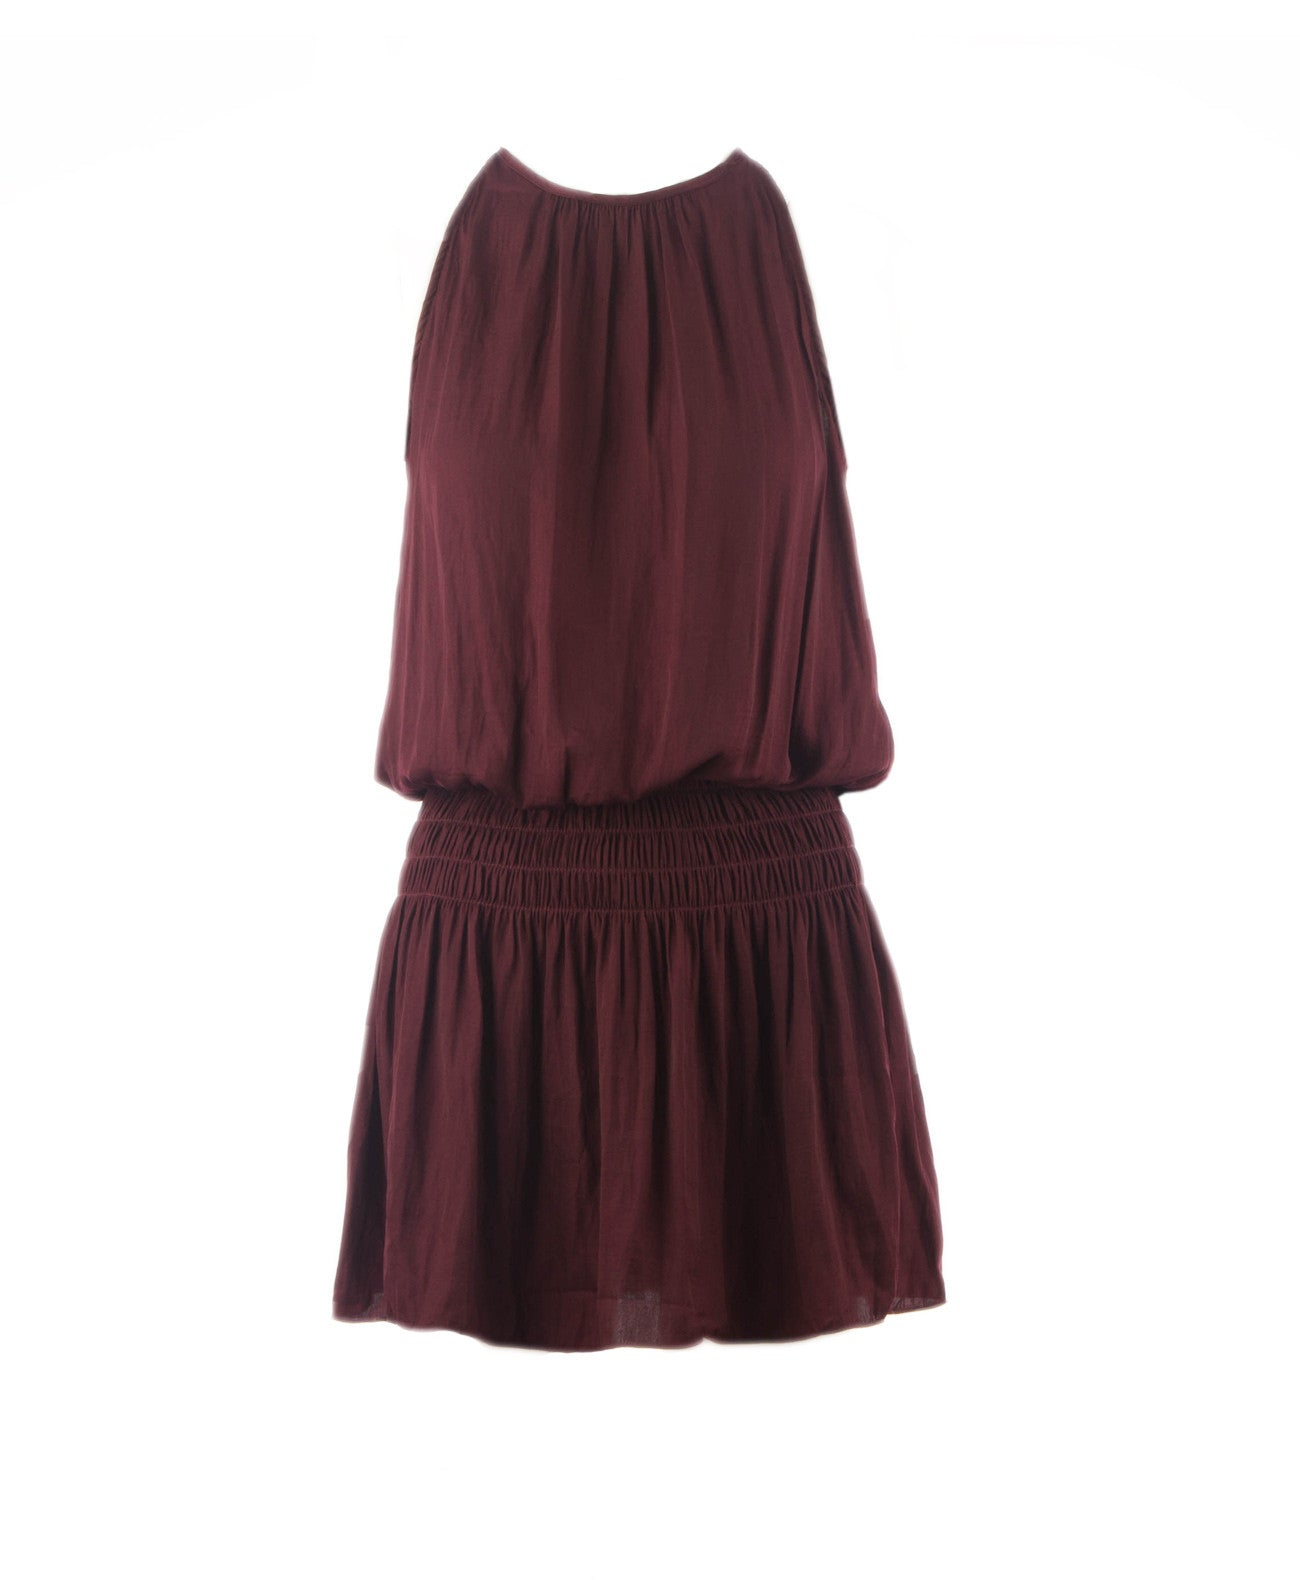 Mia Halter Neck Smocked Waist Dress Wine